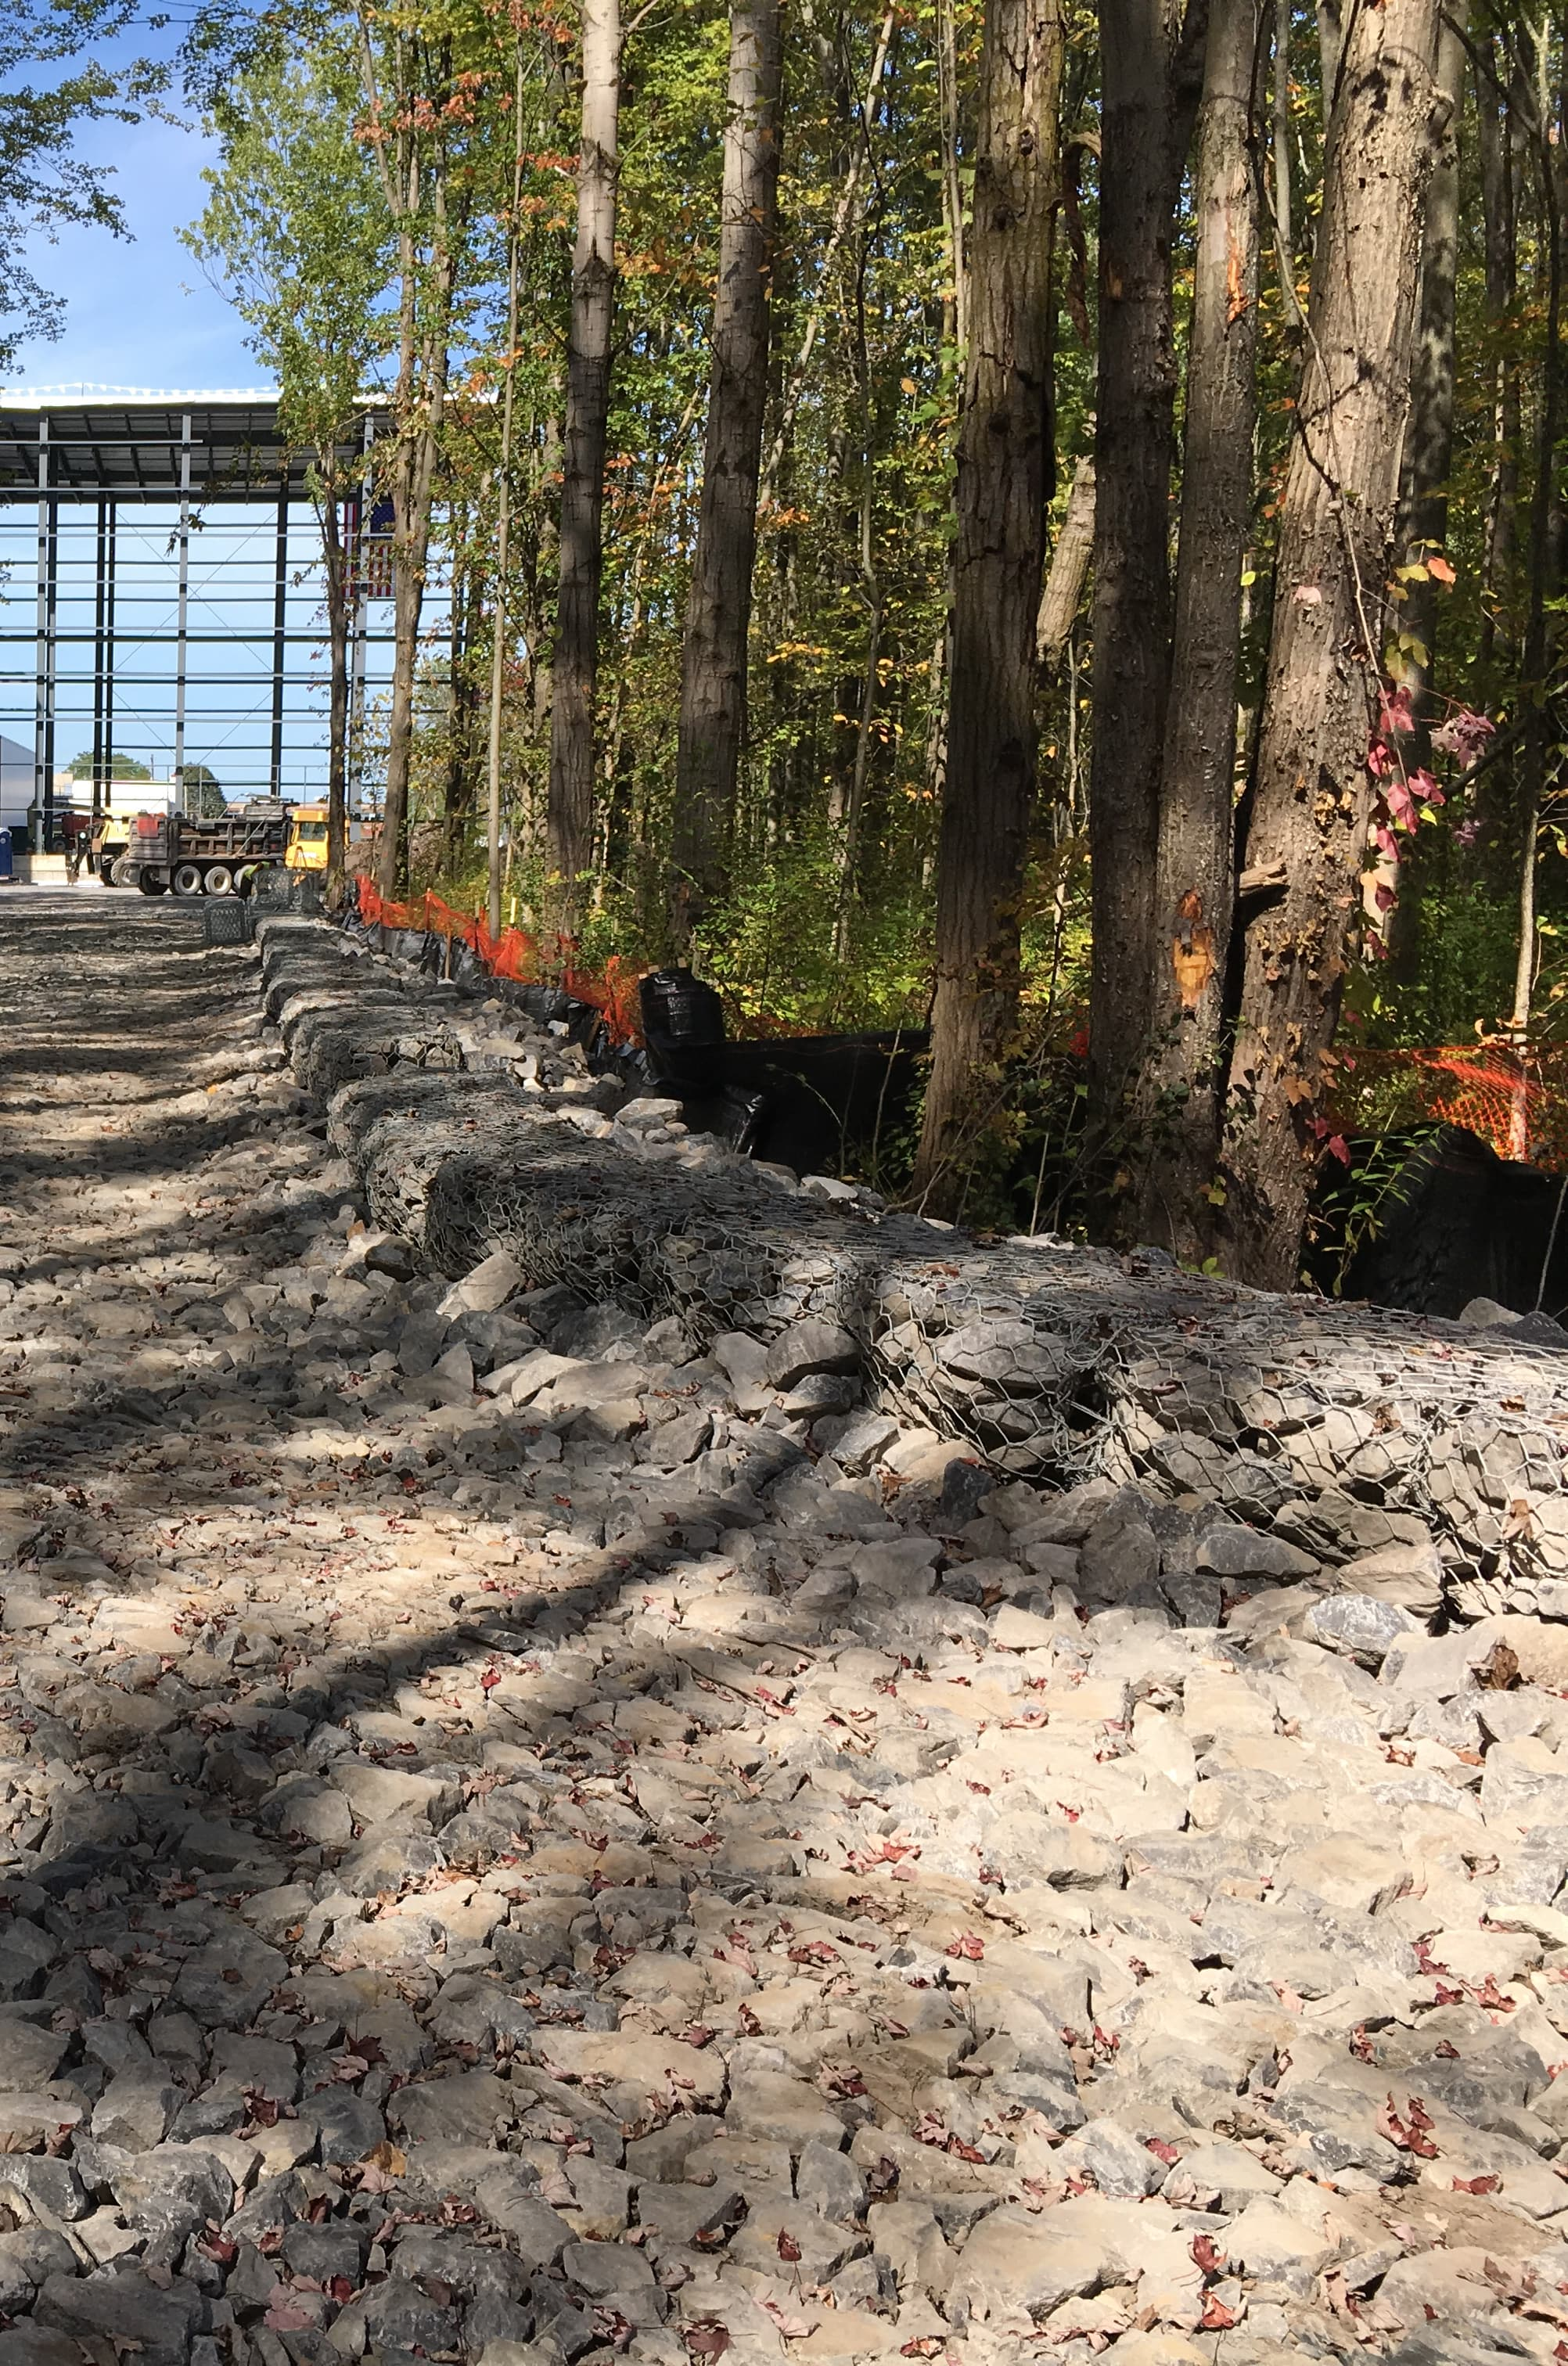 retaining wall in forest